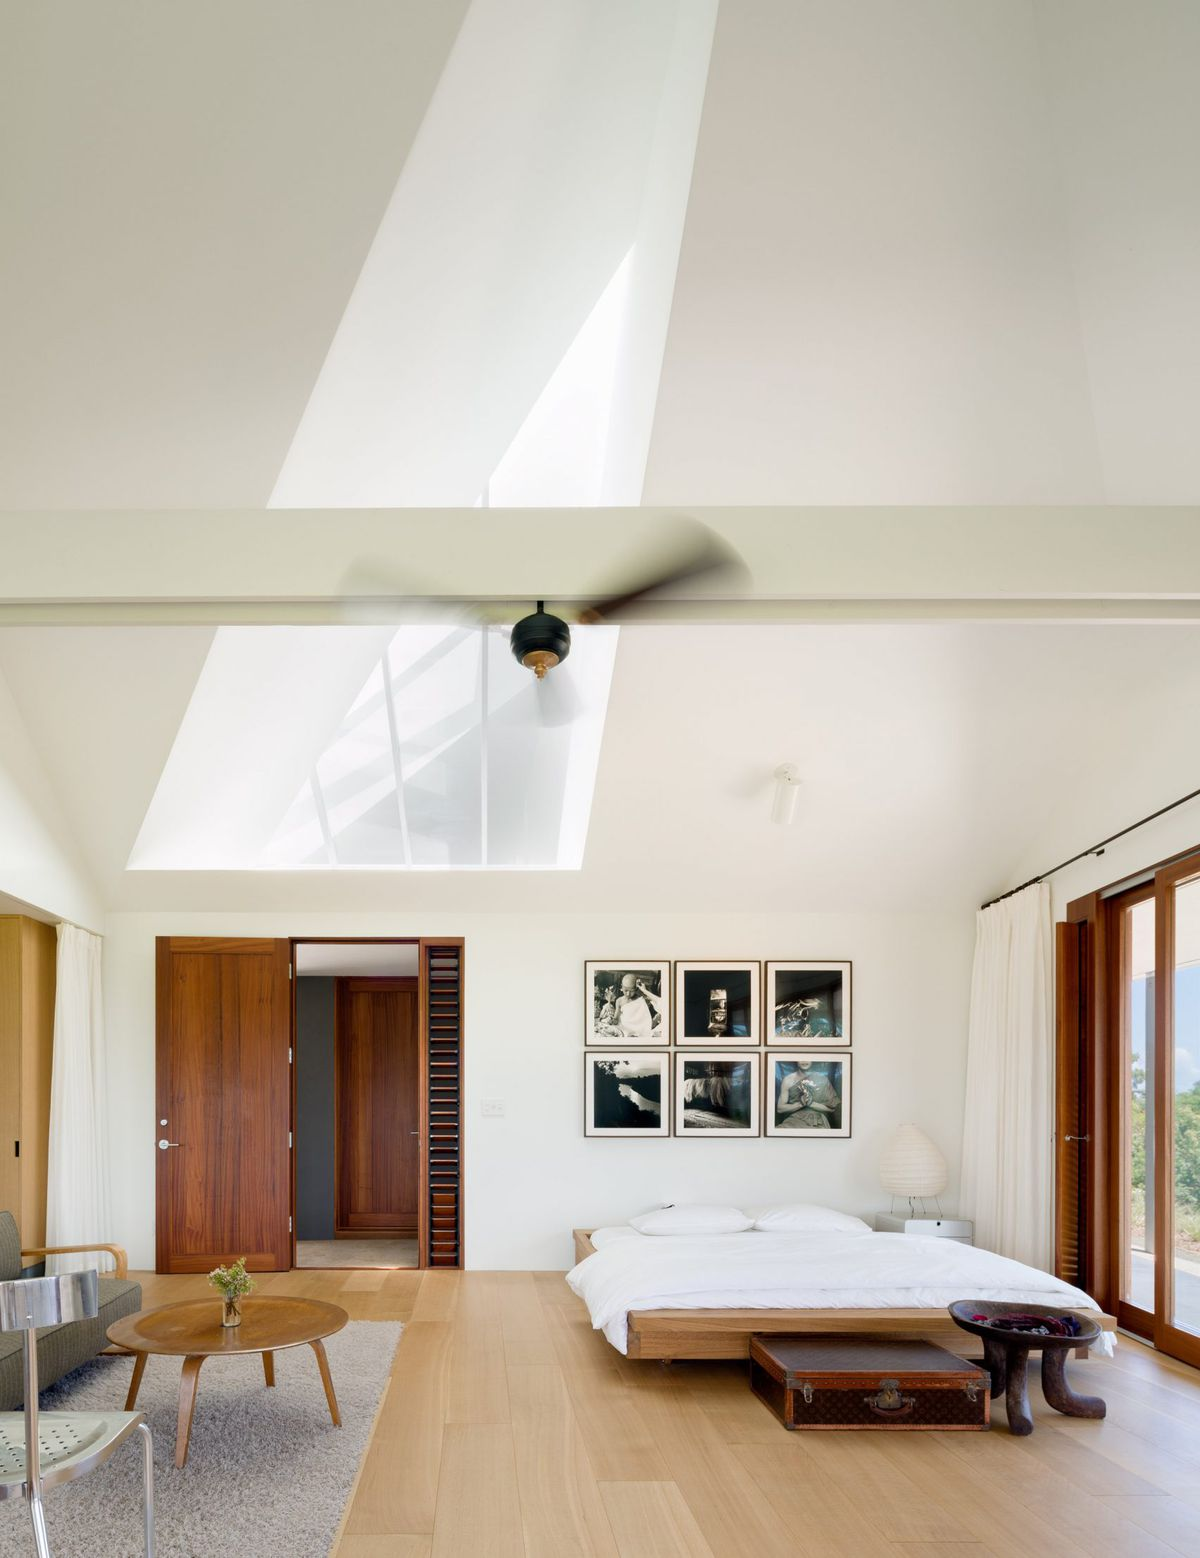 Hawaiian home lives large with massive roof, courtyard, and ...